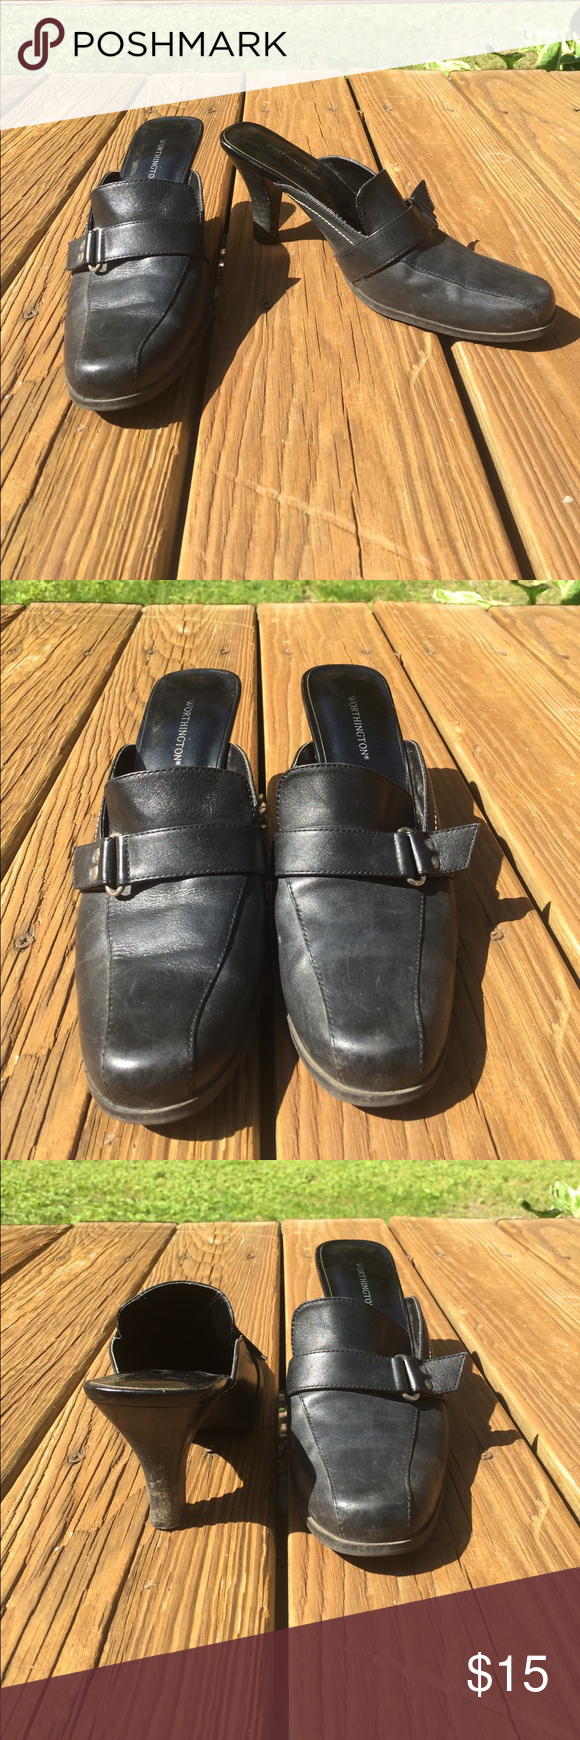 Heeled Loafers Black Worthington open heel loafers with a small heel, still in good condition with only normal wear on the heel, great for work!!! Worthington Shoes Flats & Loafers